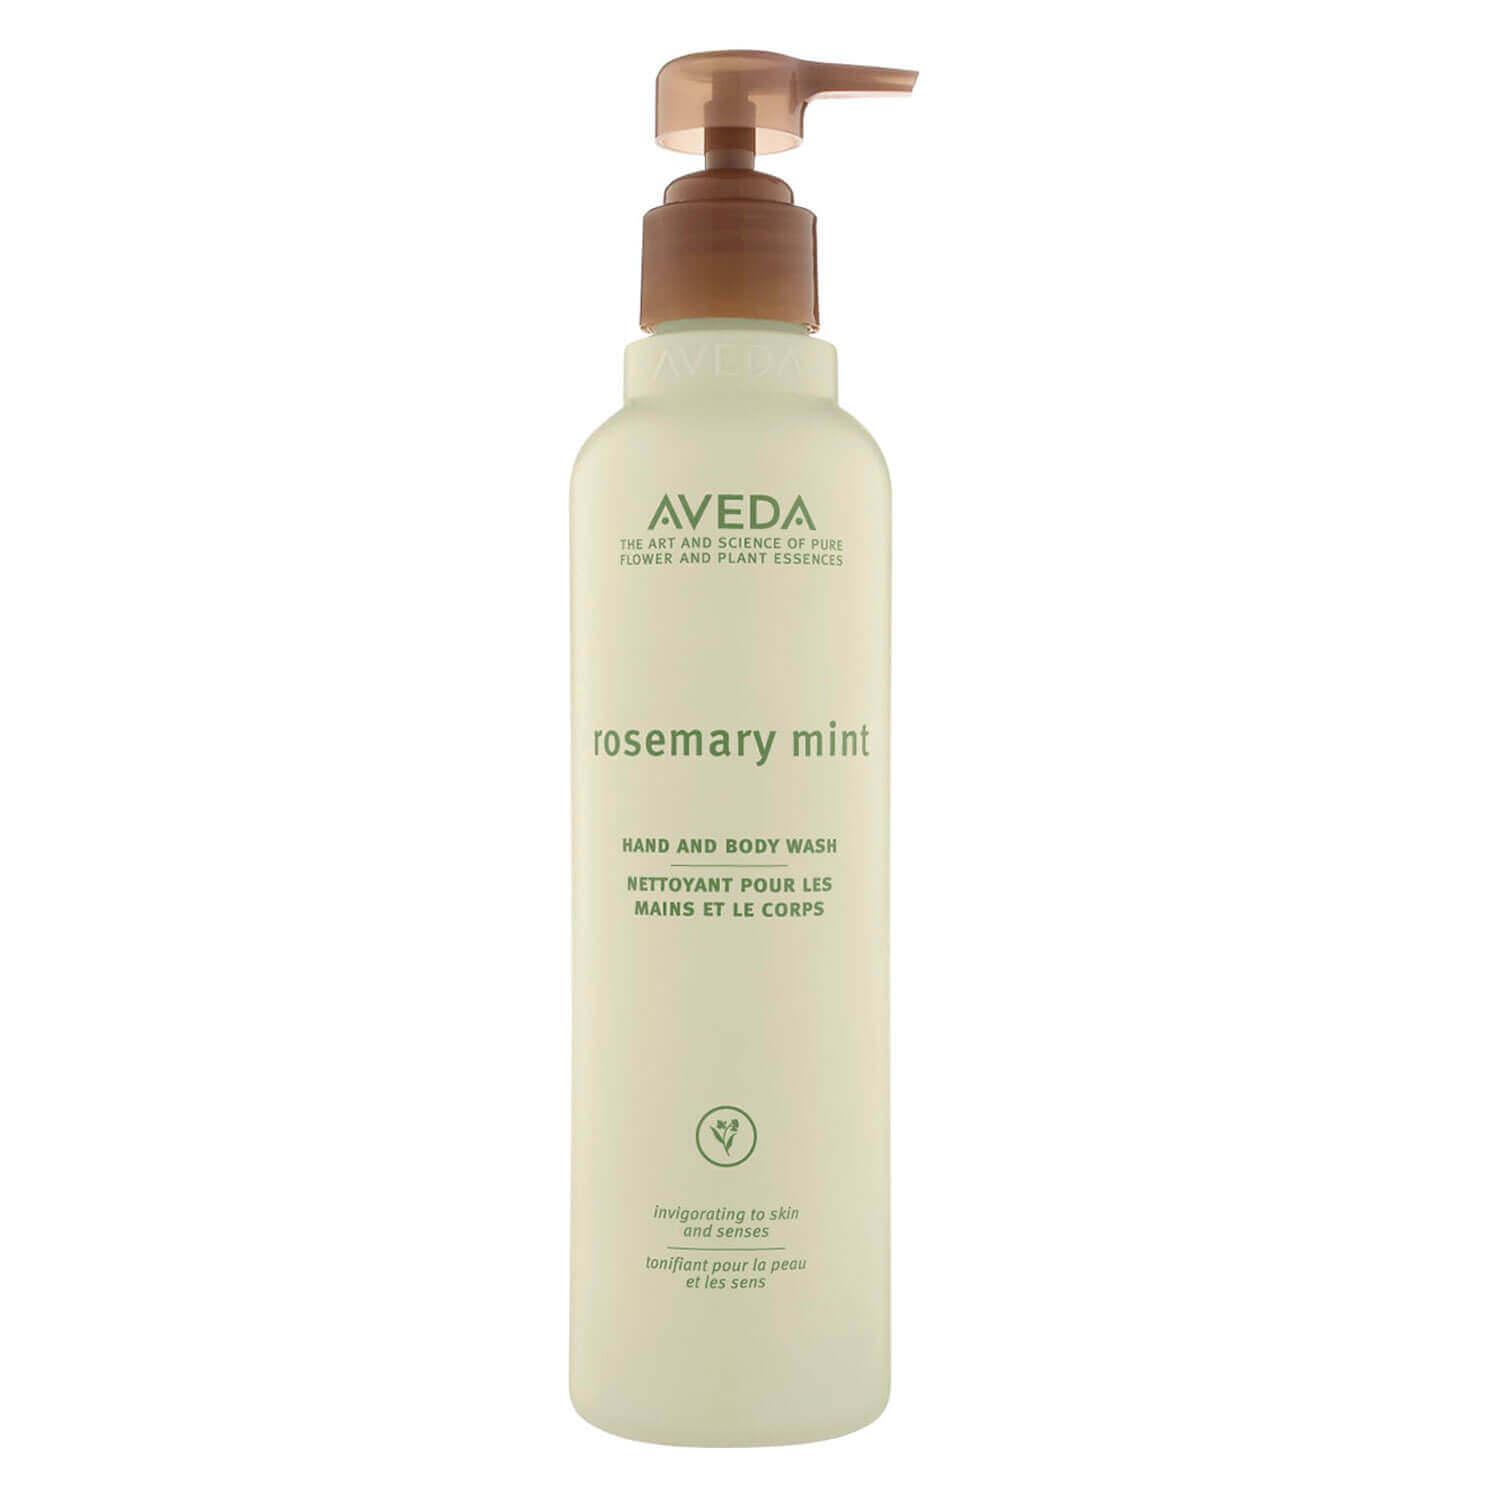 rosemary mint - hand & body wash